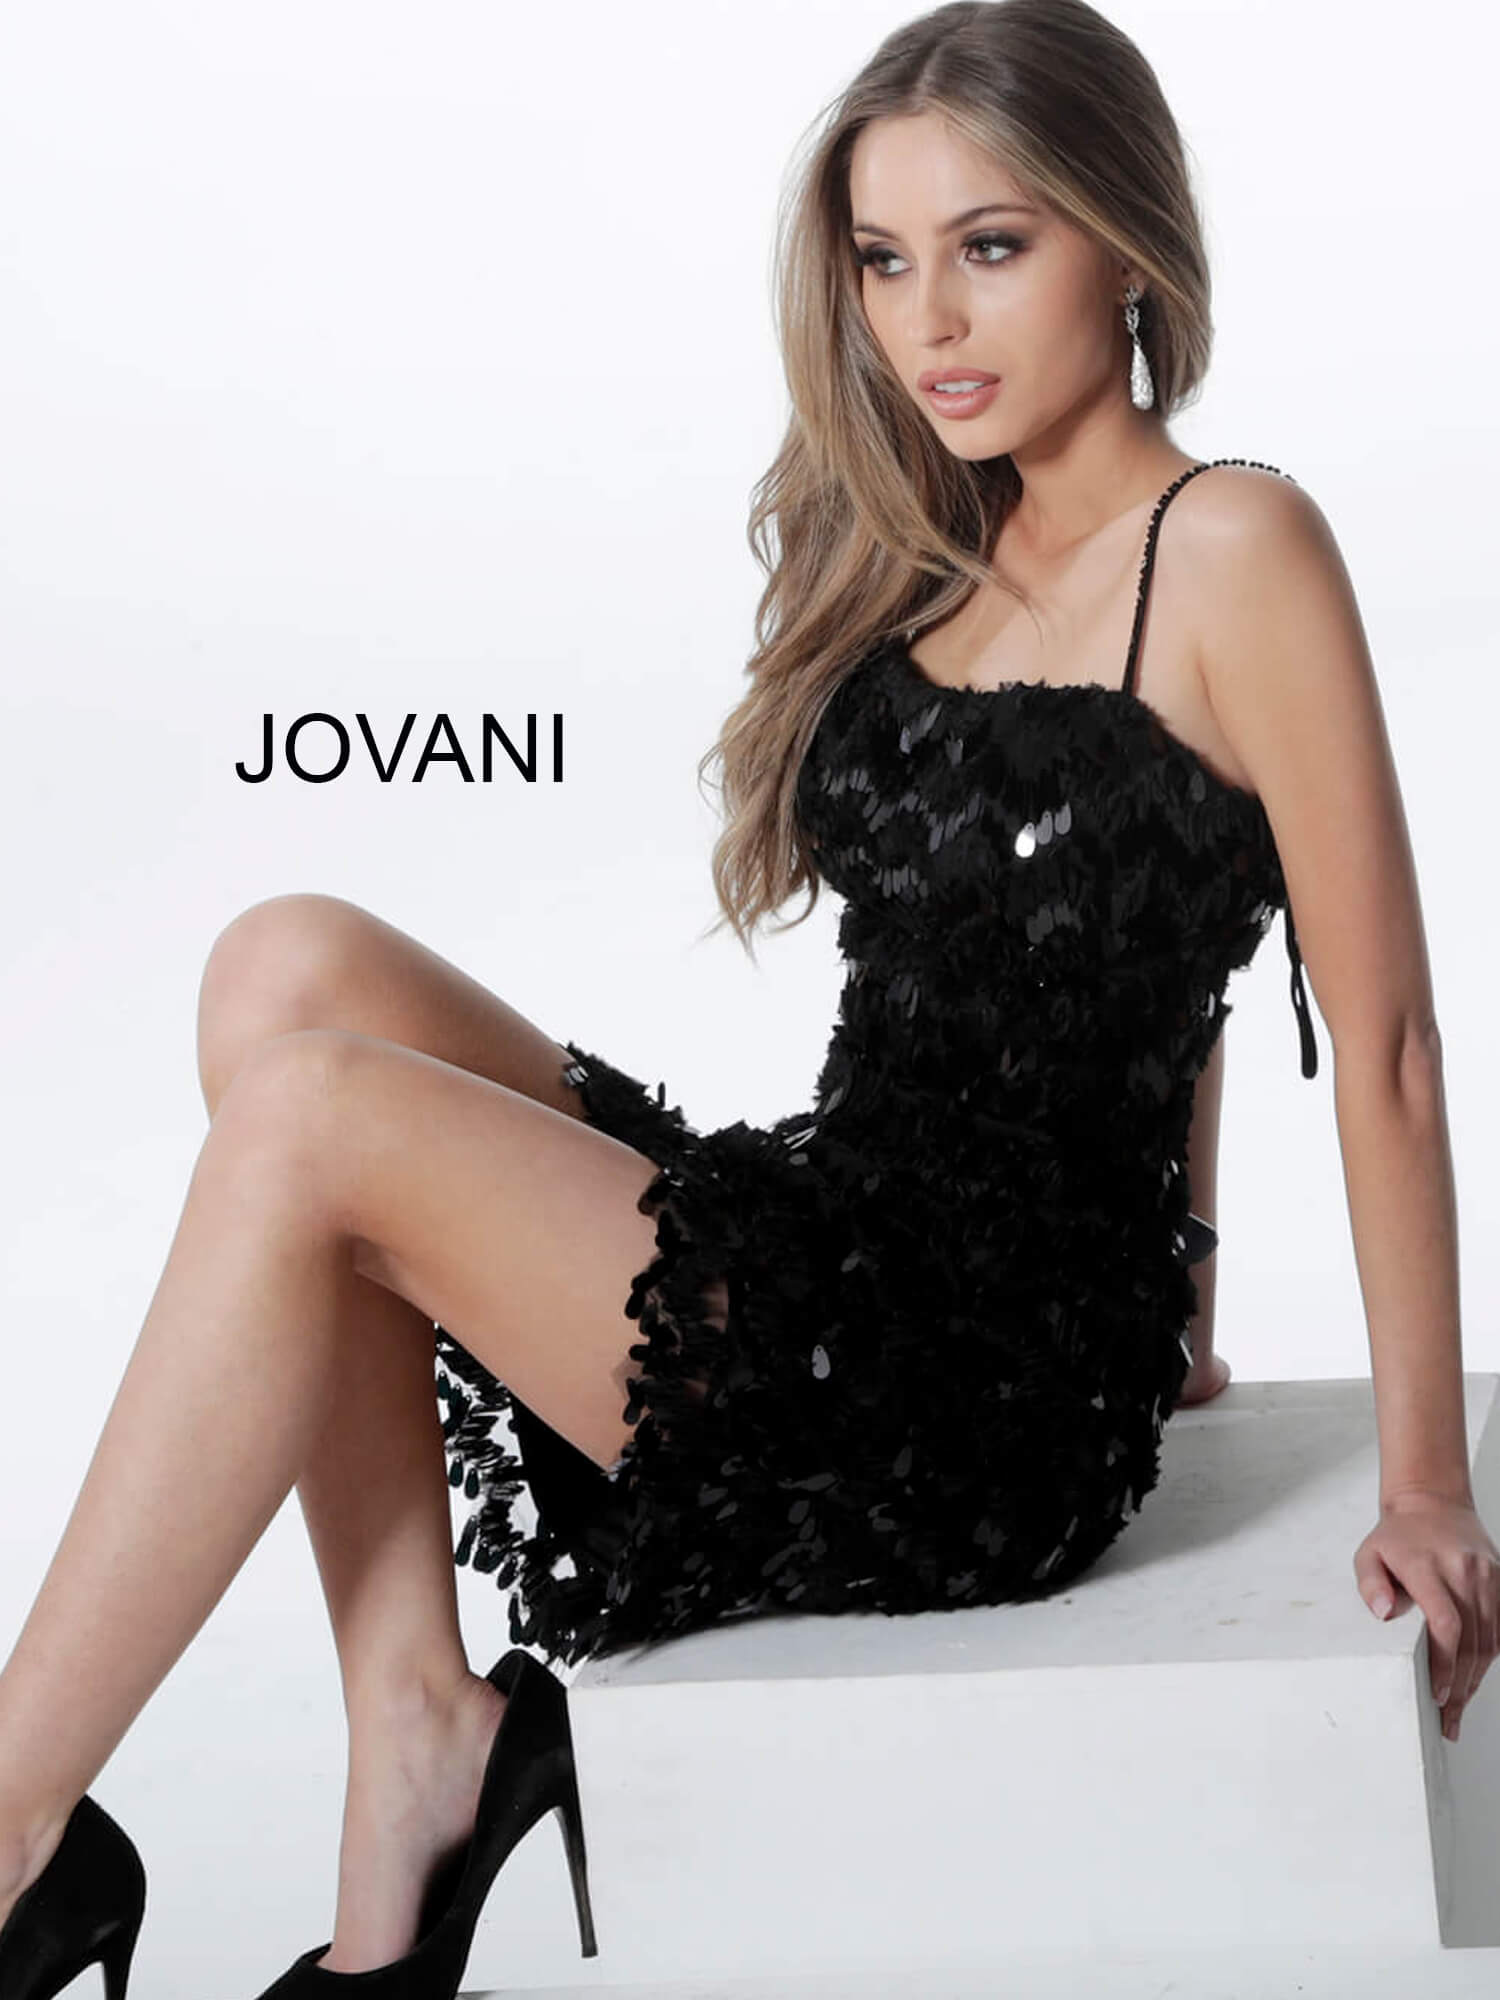 Jovani embellished short black cocktail dress 1480 on mobile 2